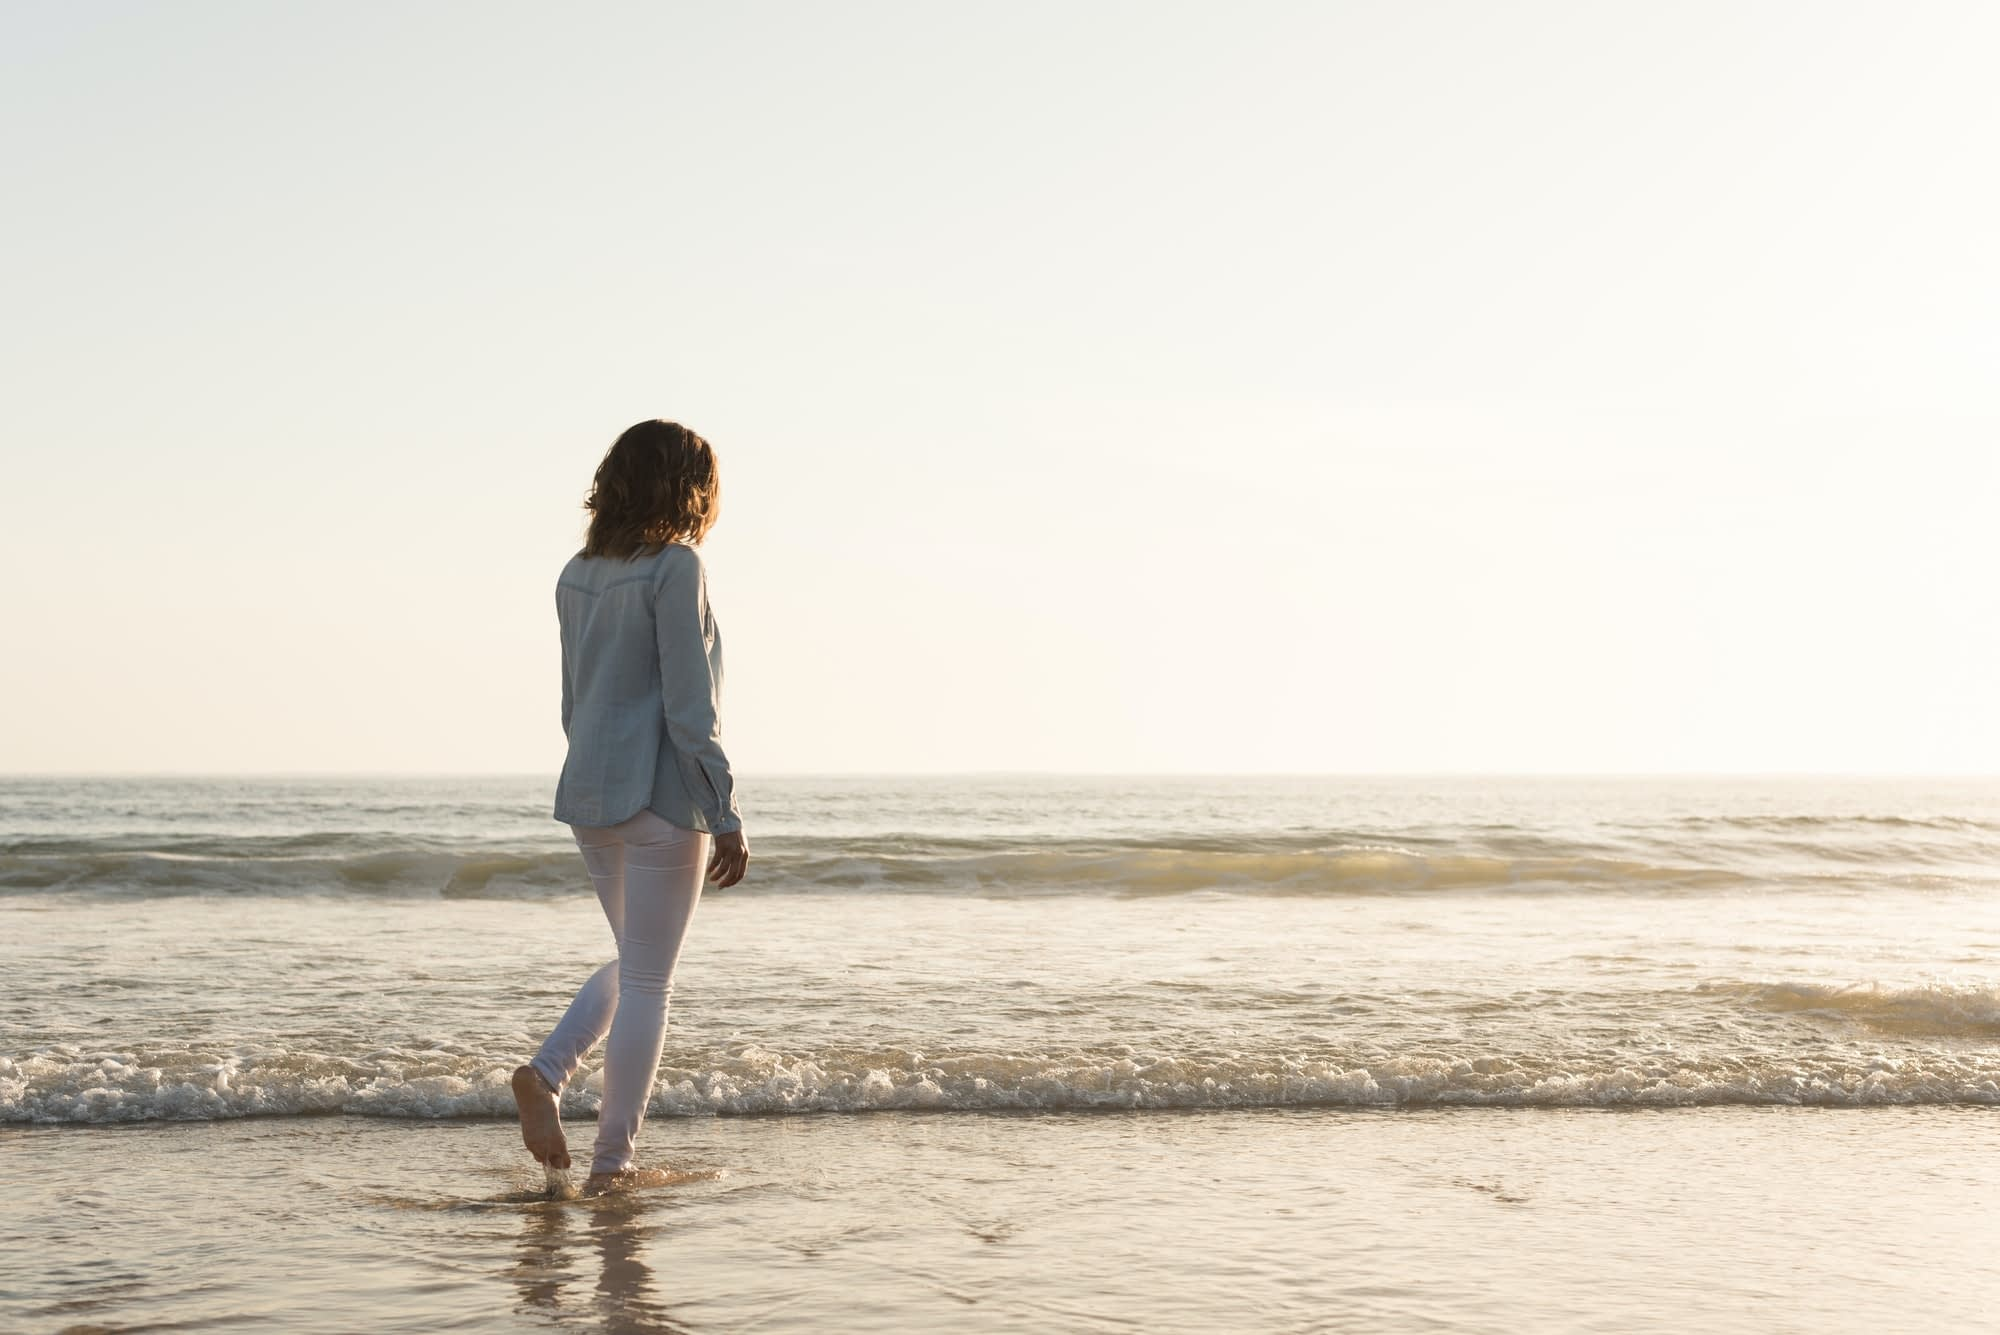 7 key things to know when starting over in life